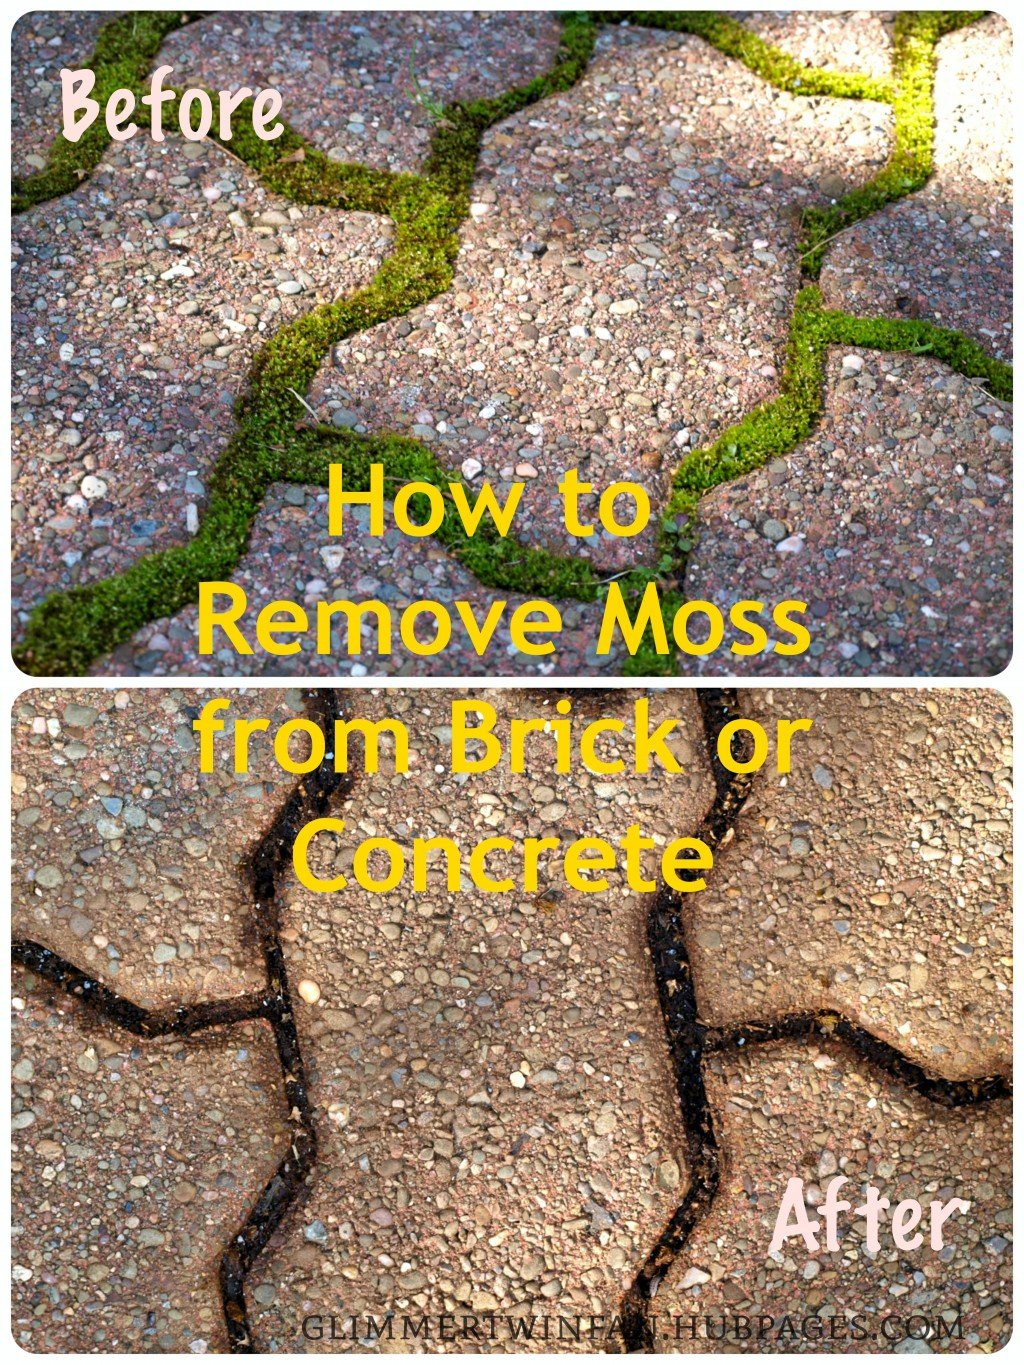 How to remove moss from brick or concrete dengarden - Removing paint from brick exterior collection ...